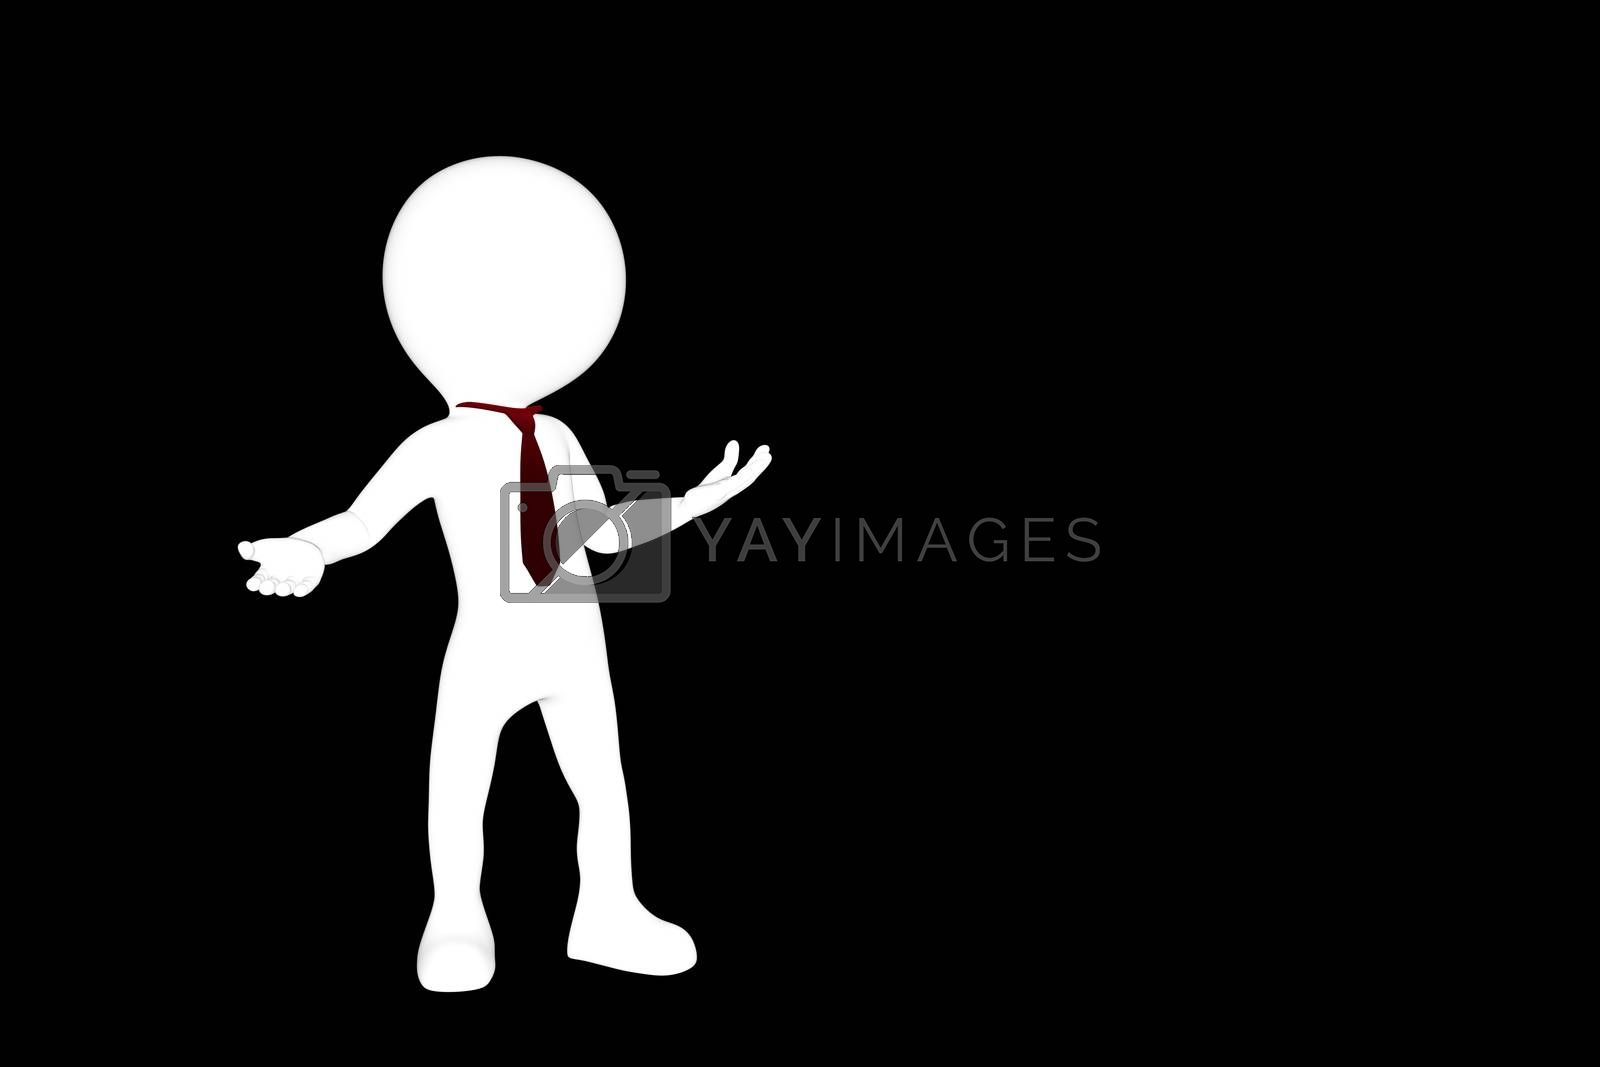 3d illustration of a man silhouette isolated on black background